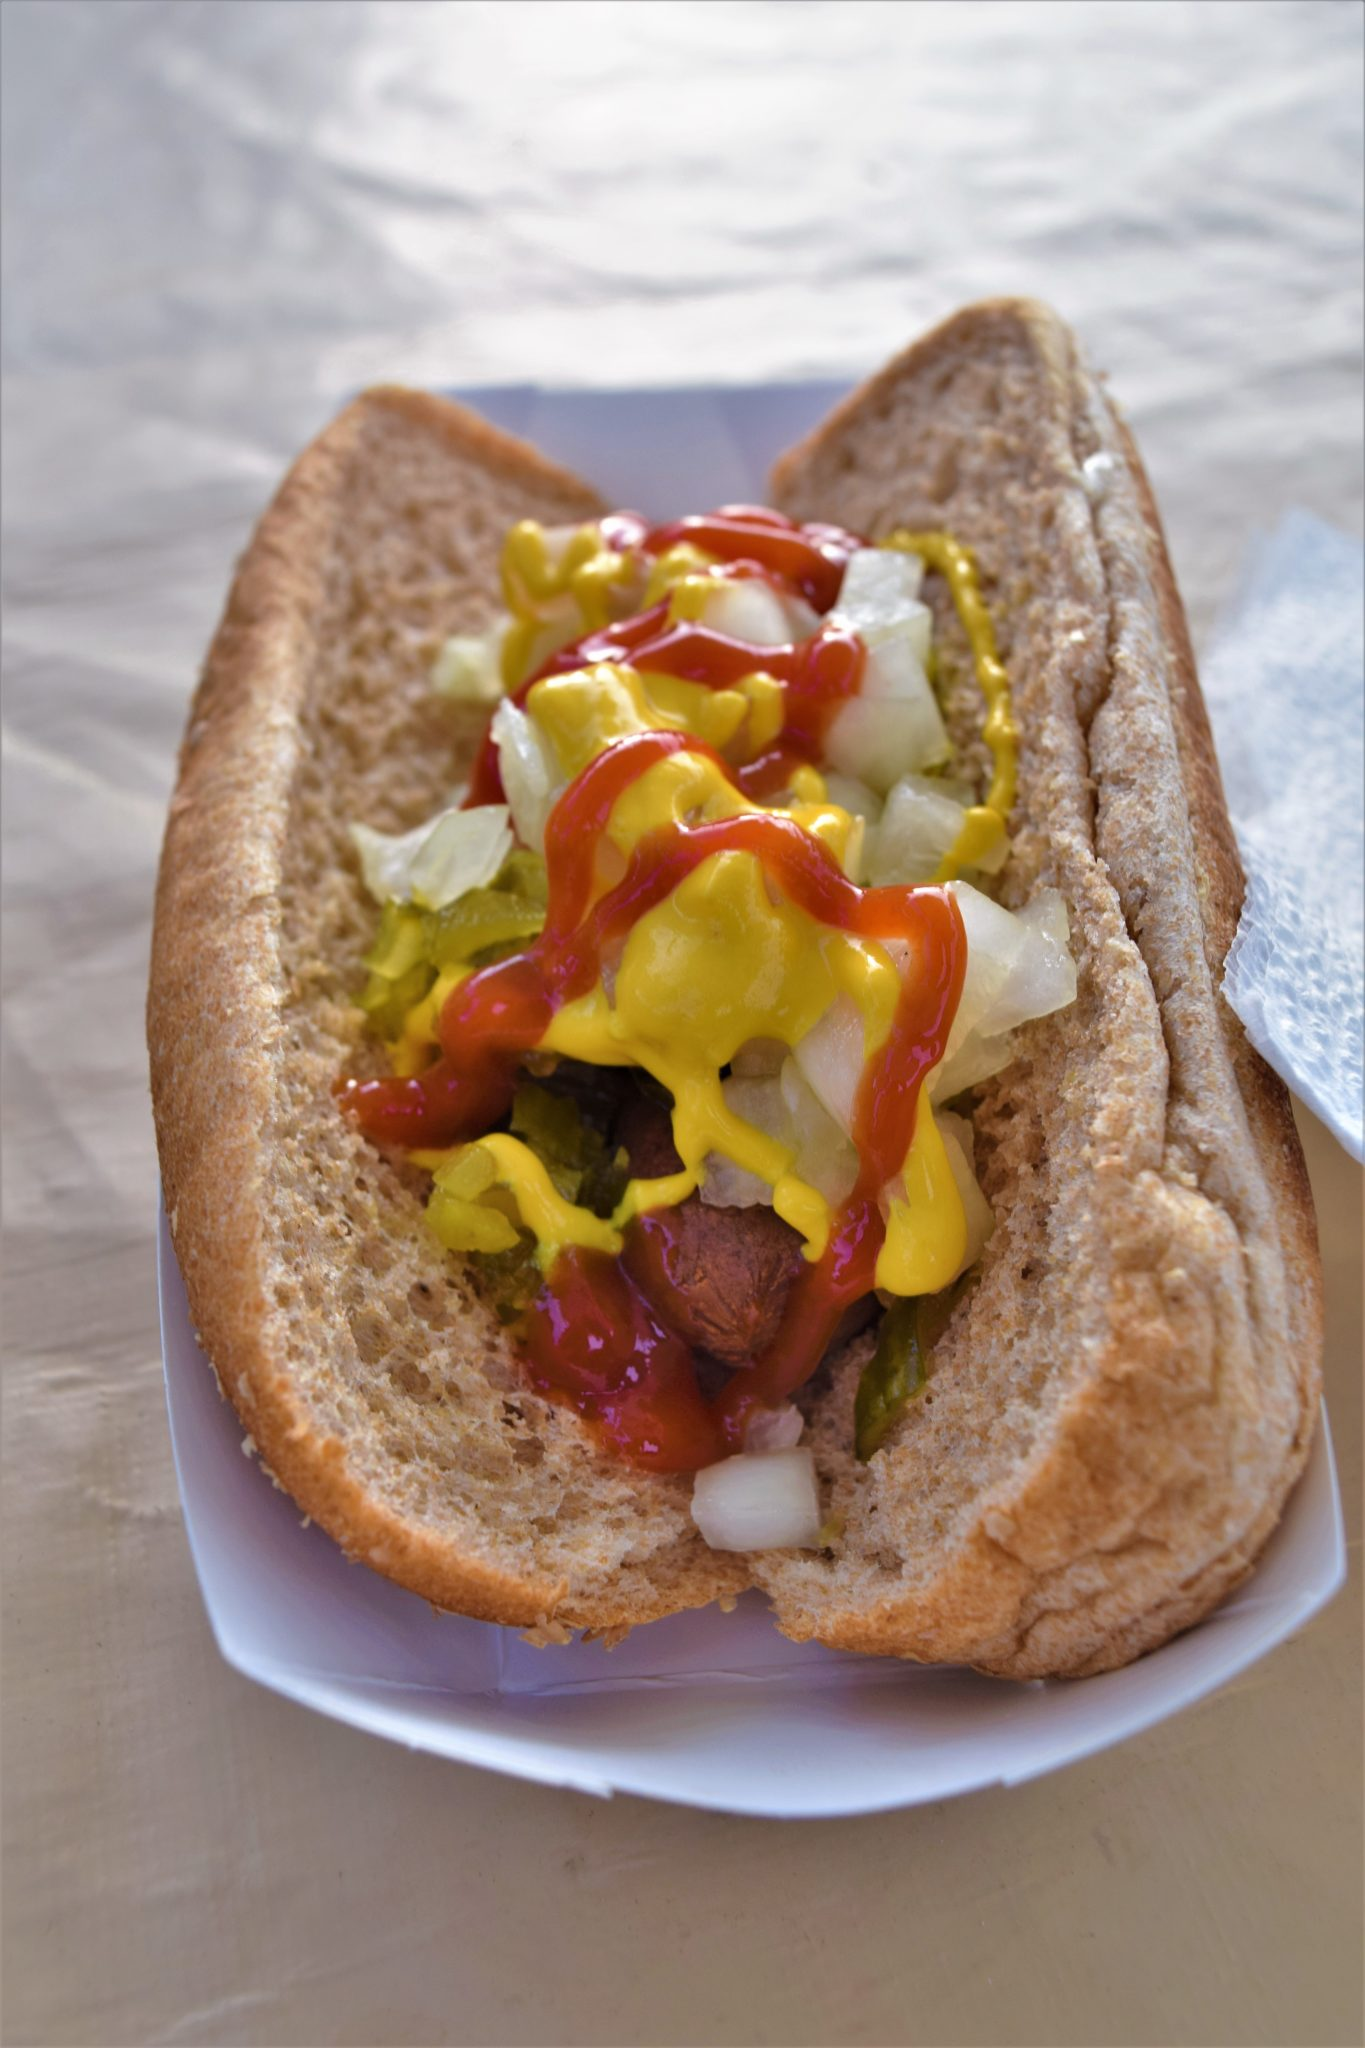 Vegan hot dog, Los Angeles, California